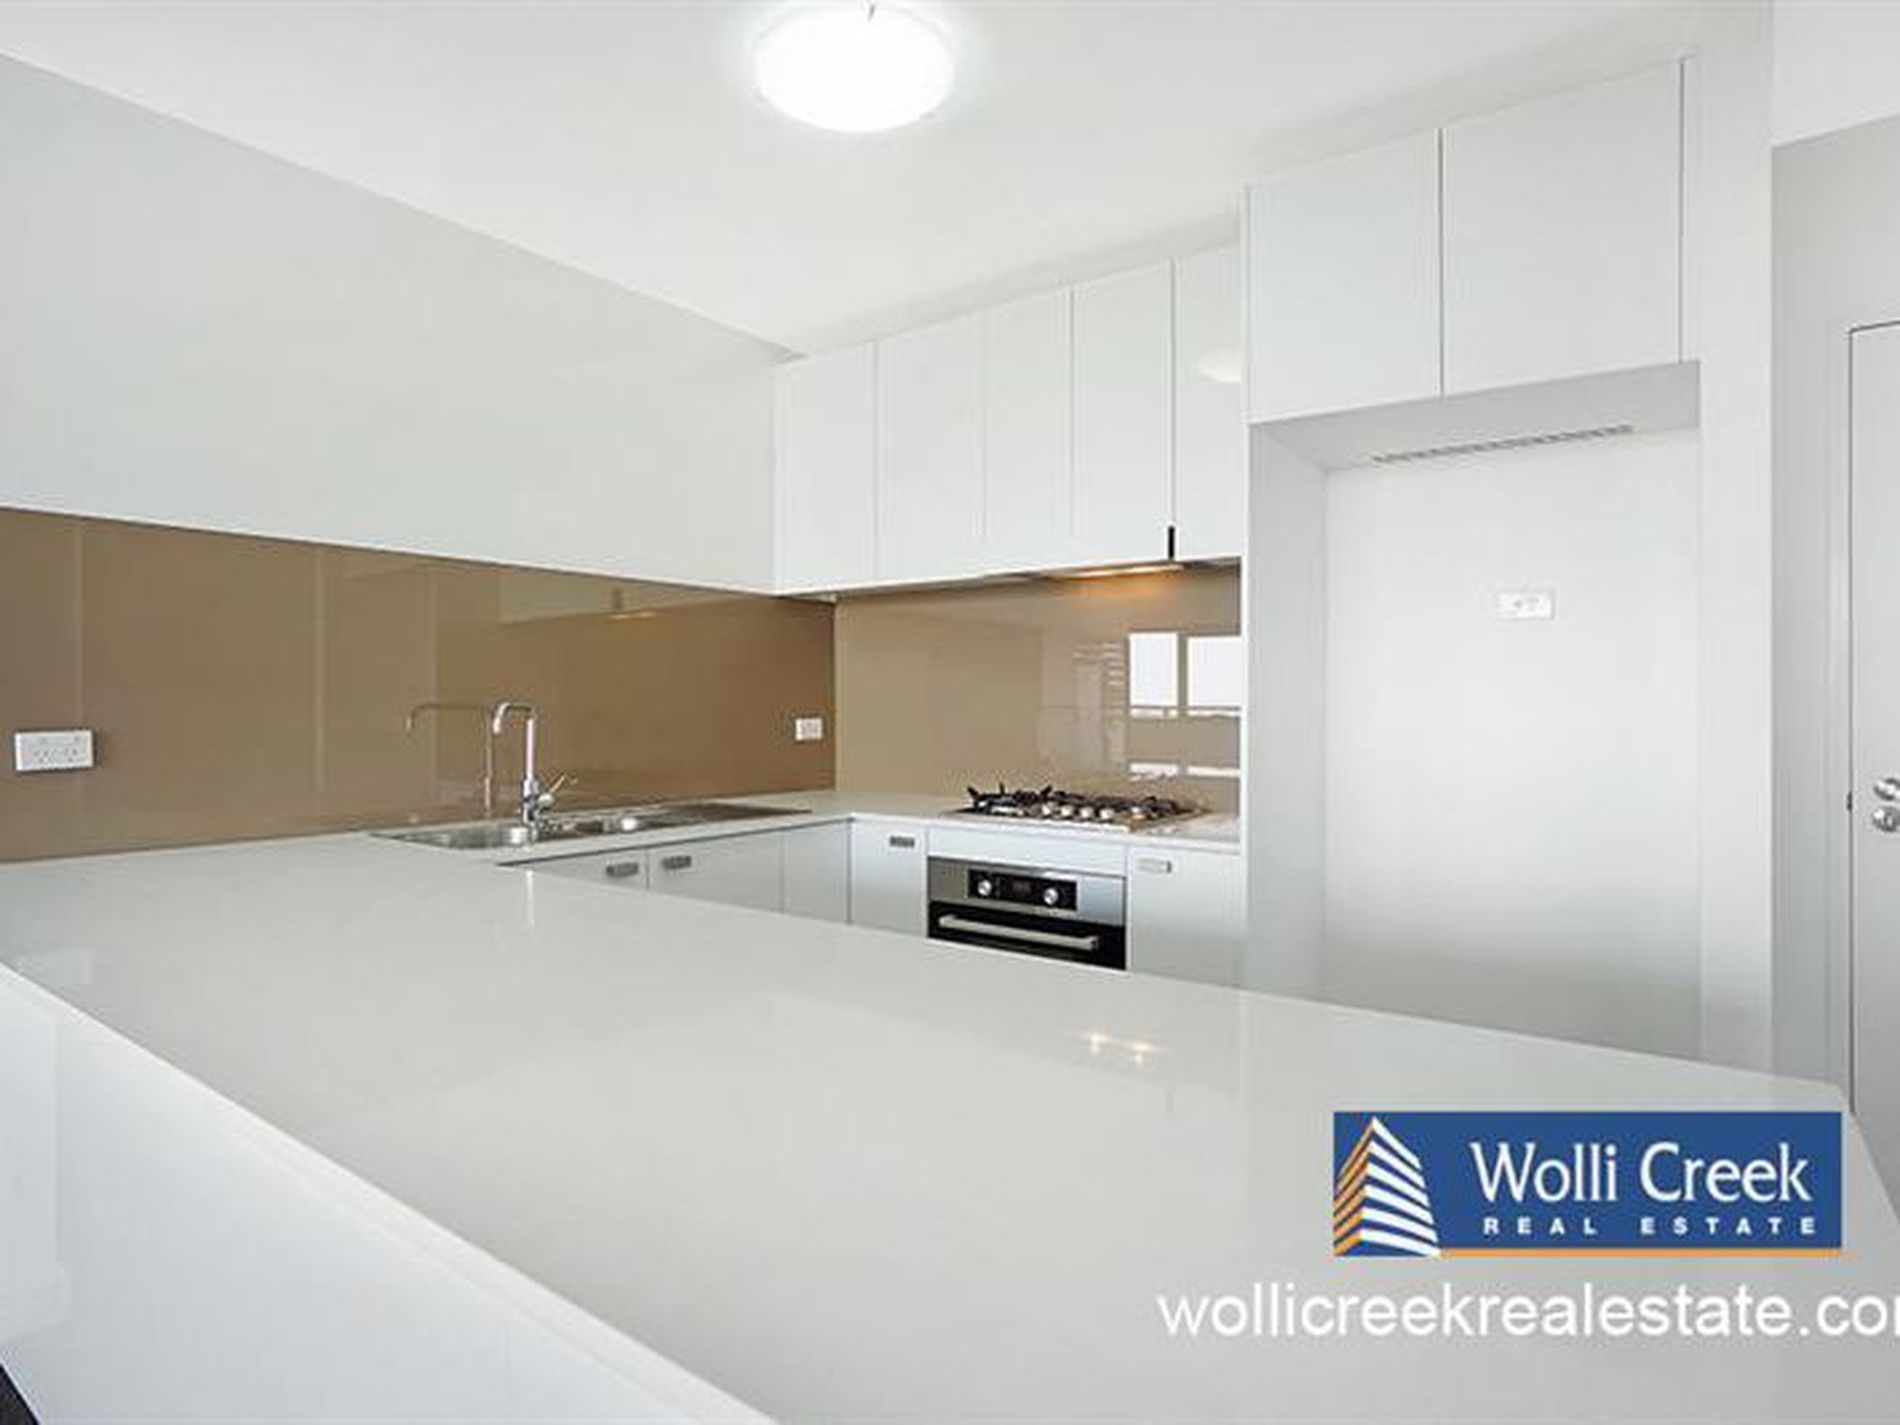 C8 / 1-5 Gertrude Street, Wolli Creek